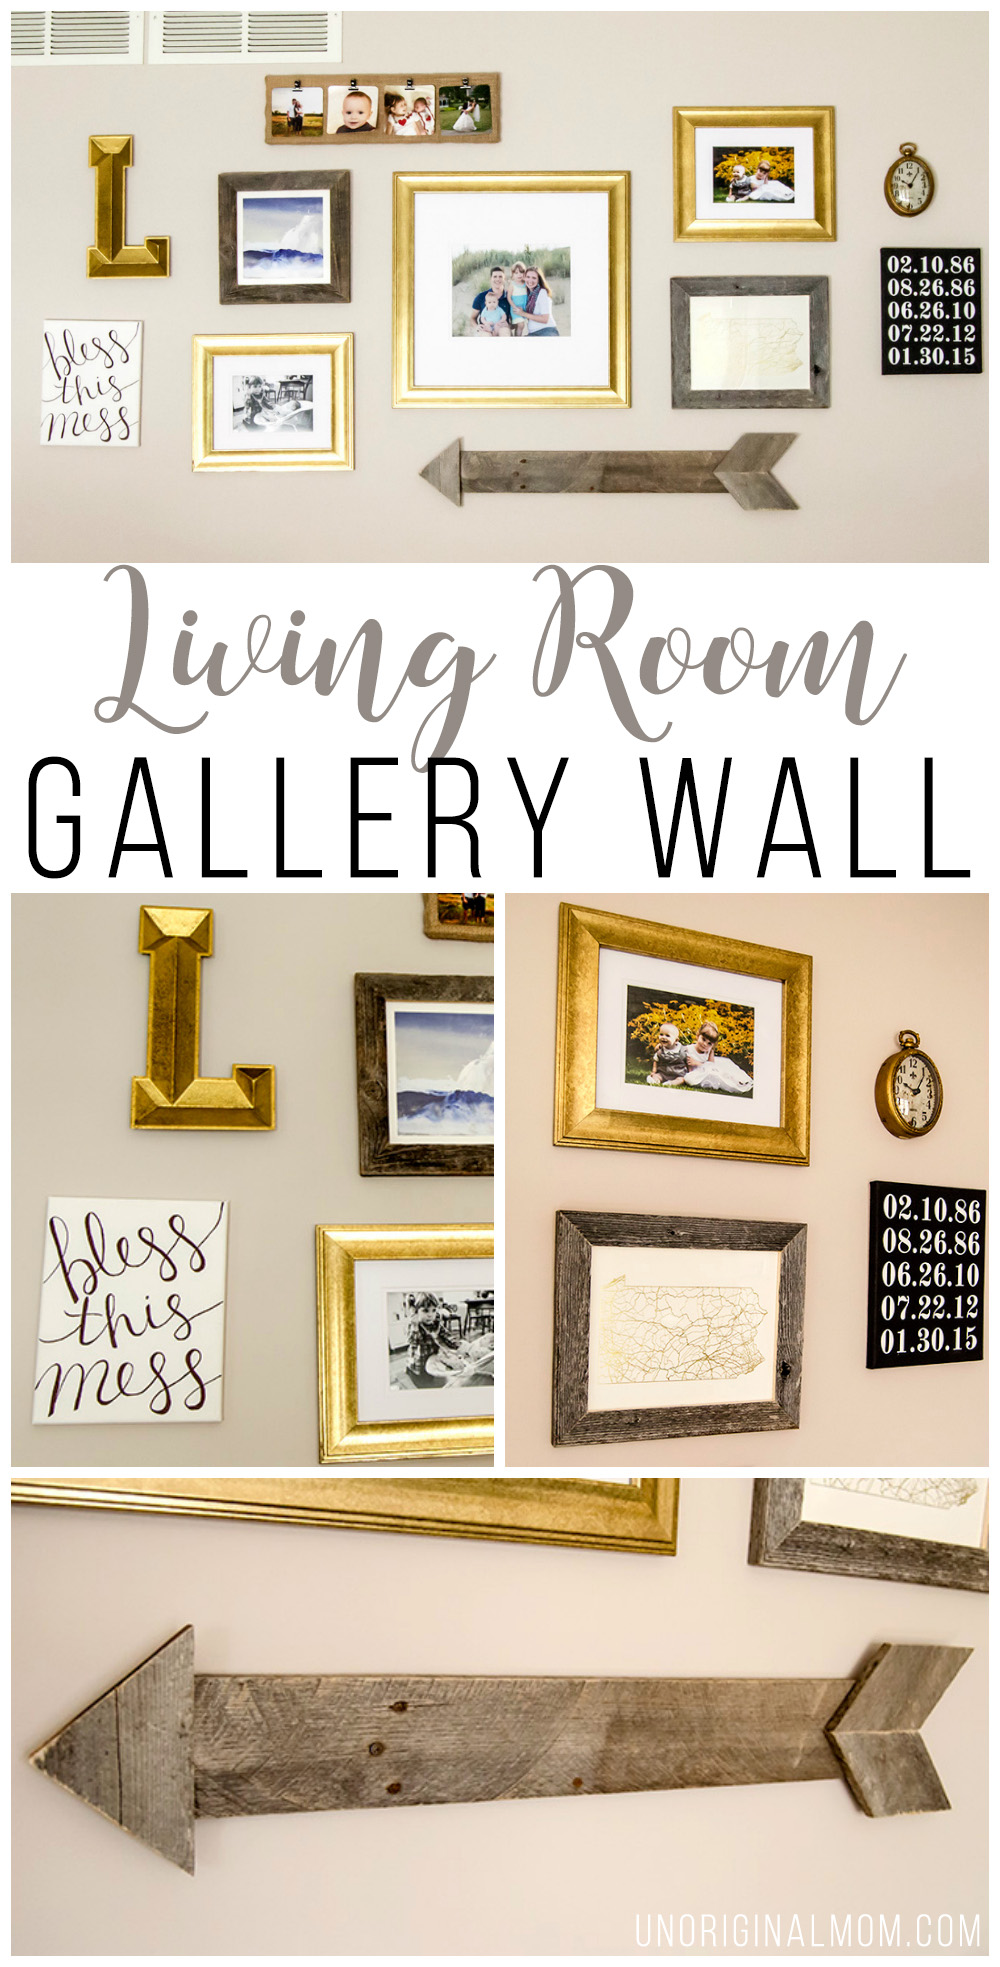 Our Living Room Gallery Wall - unOriginal Mom